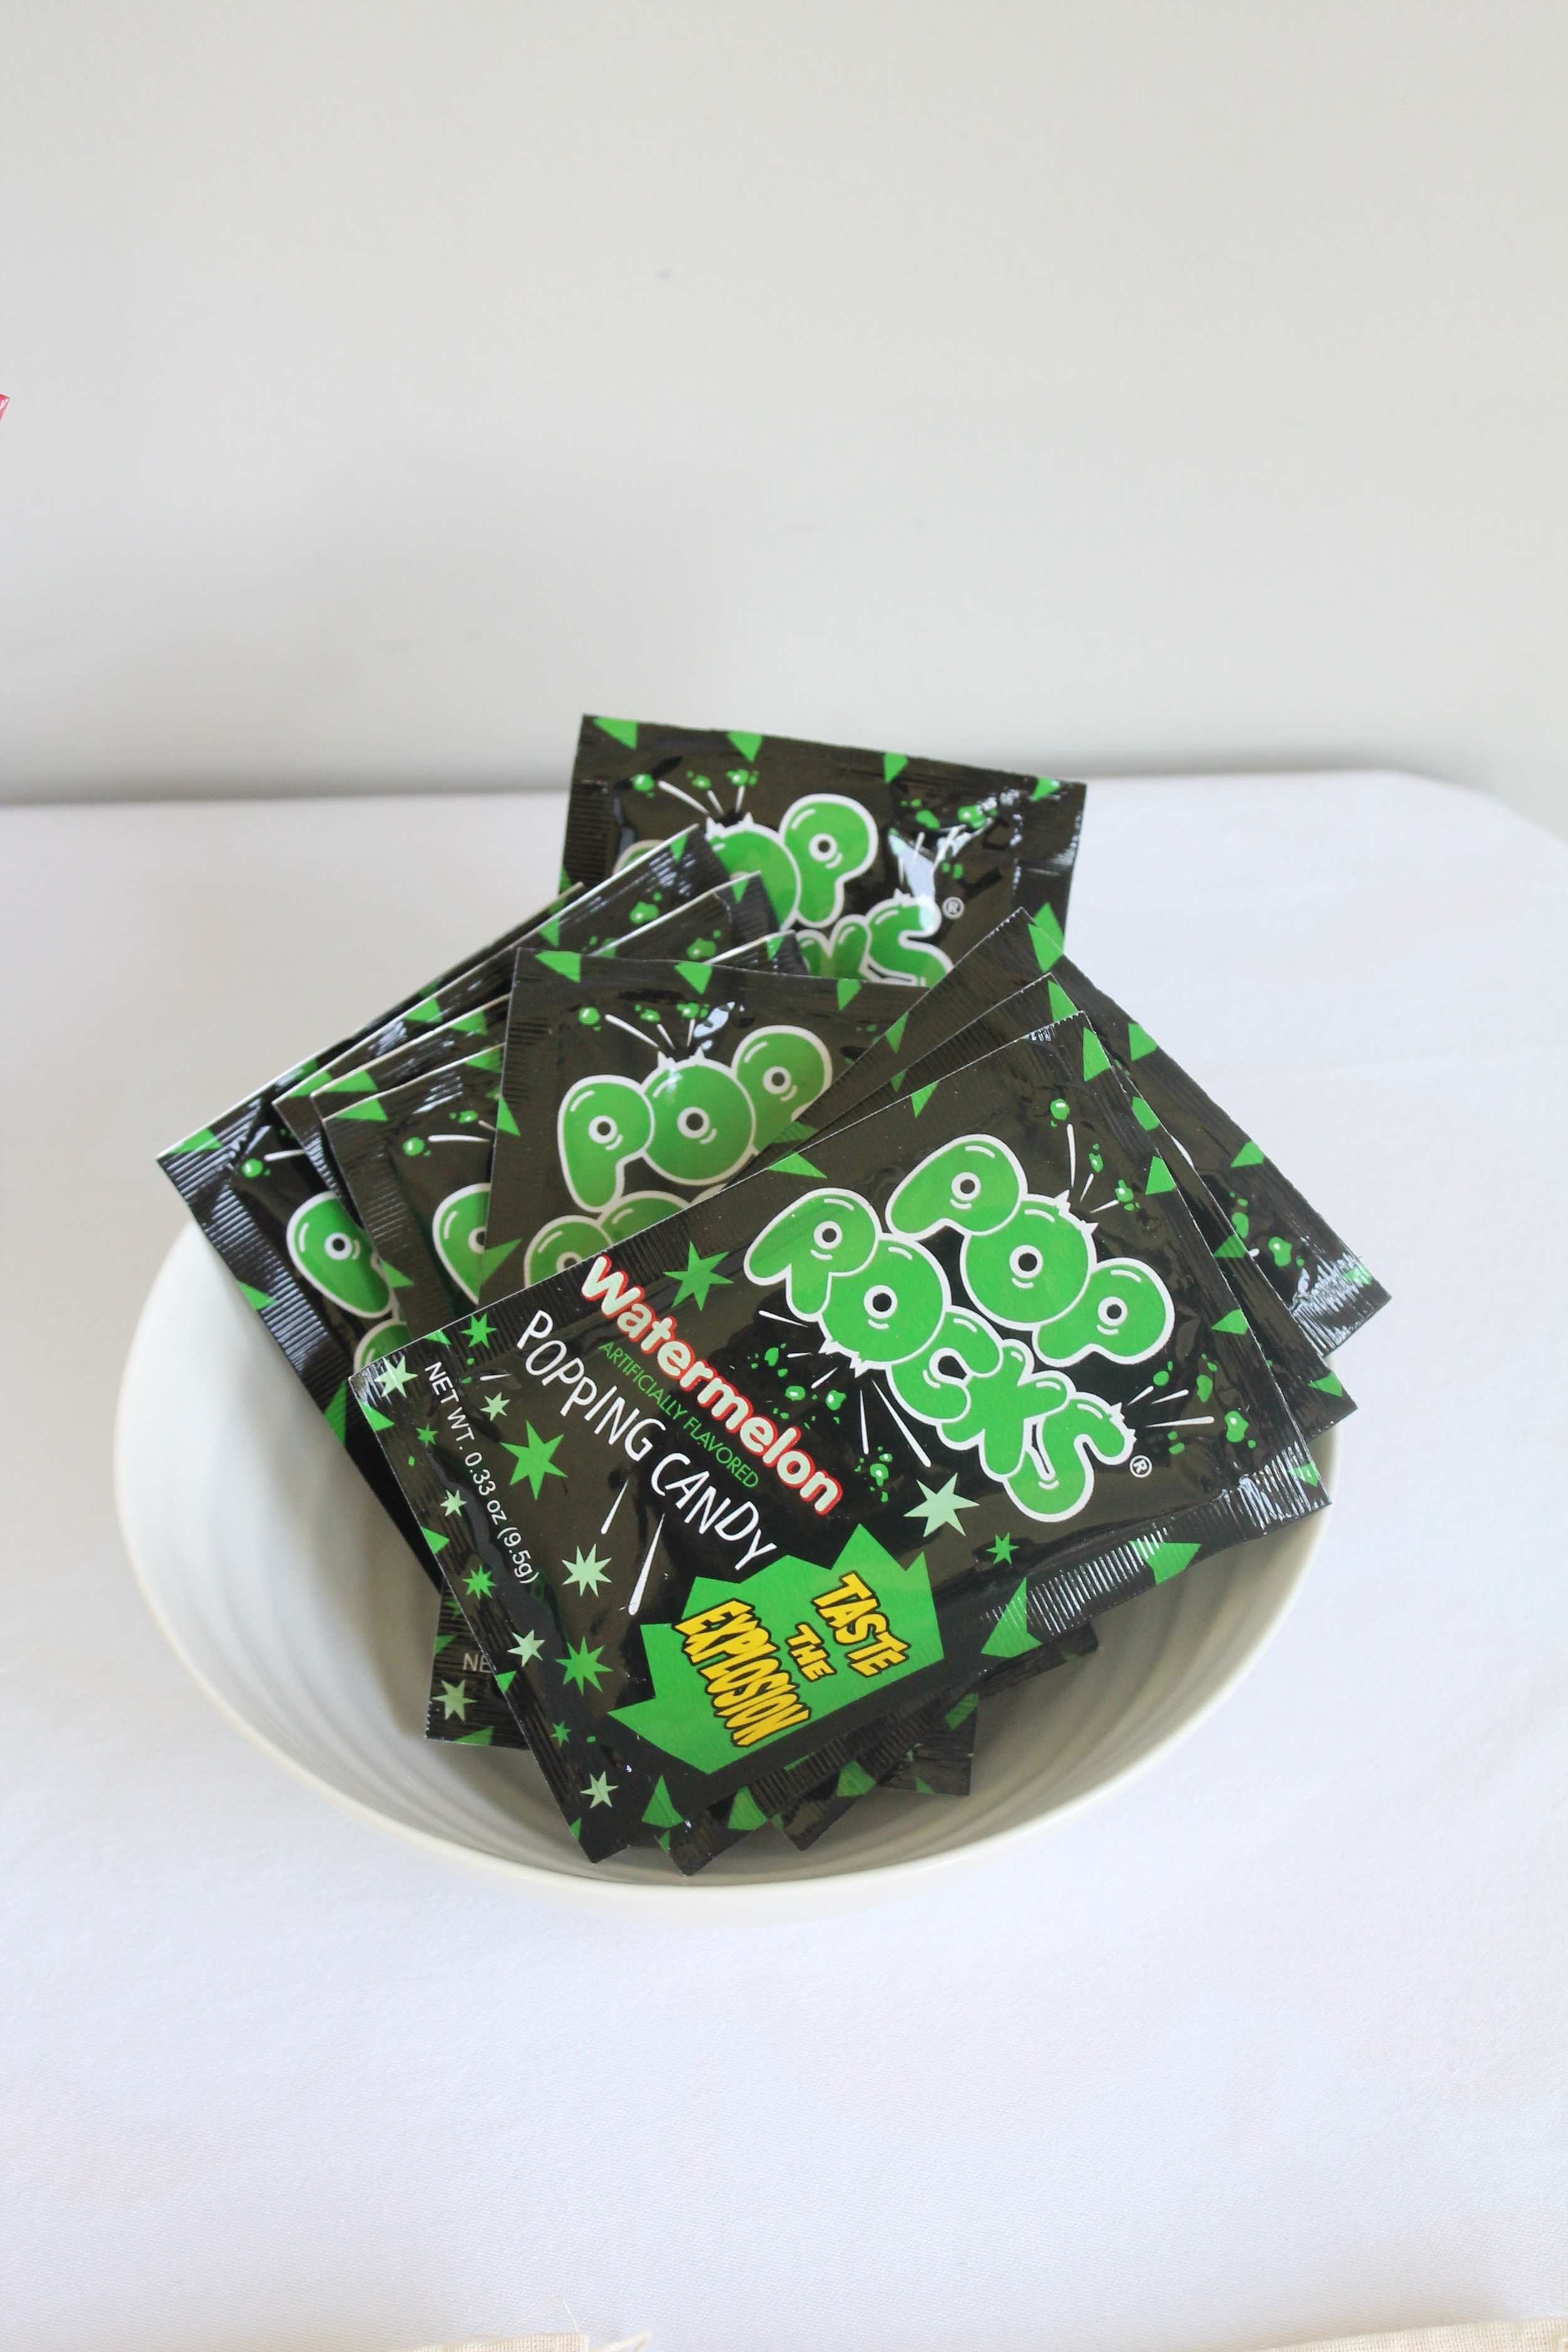 Pop Rocks for a Rock birthday party.